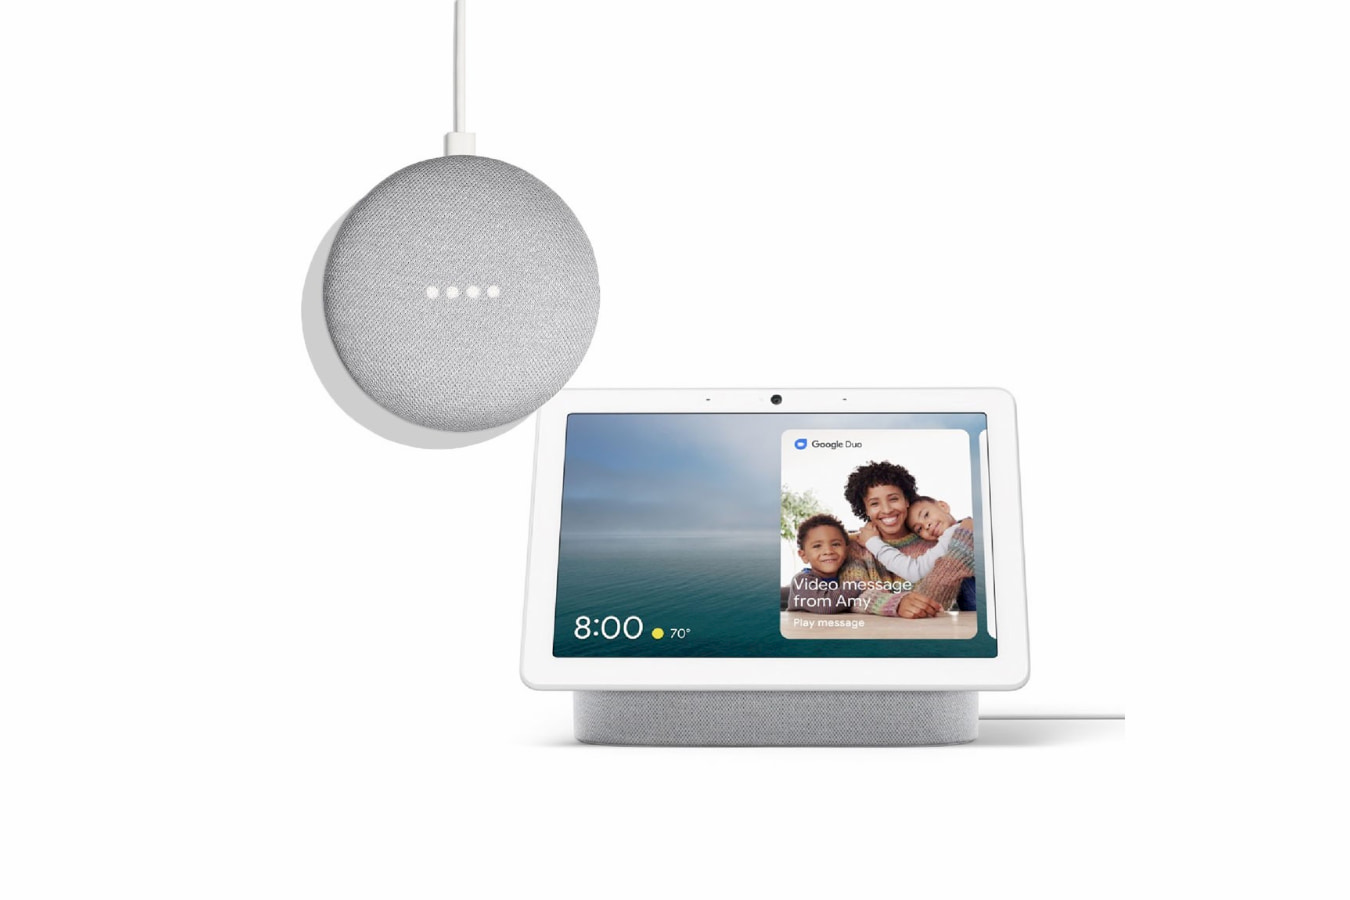 Save big with these Google/Nest bundles and score a free gift card